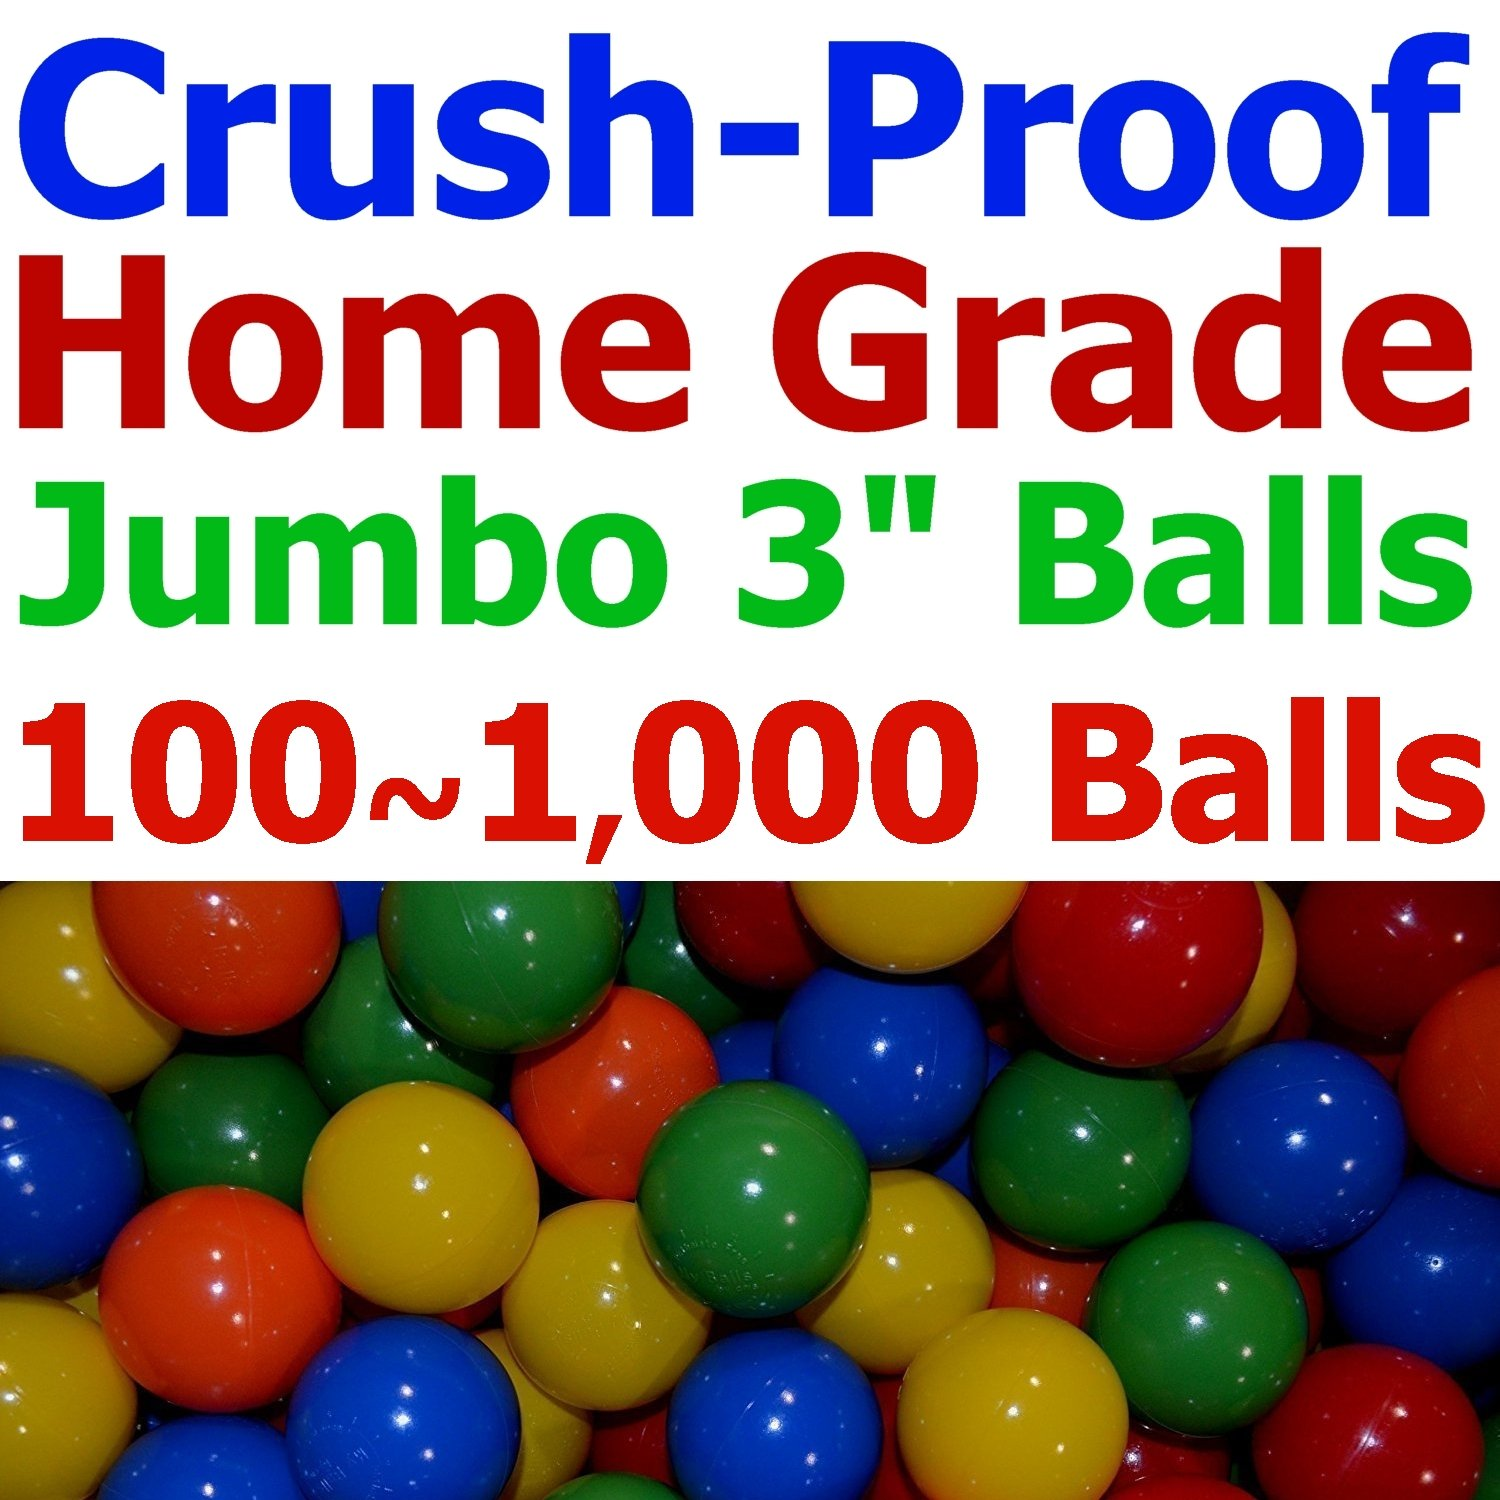 My Balls Pack of 100 Jumbo 3'' Crush-Proof Ball Pit Balls - 5 Bright Colors, Phthalate Free, BPA Free, PVC Free, Non-Toxic, Non-Recycled Plastic (Standard Home Grade, Pack of 100) by My Balls (Image #1)